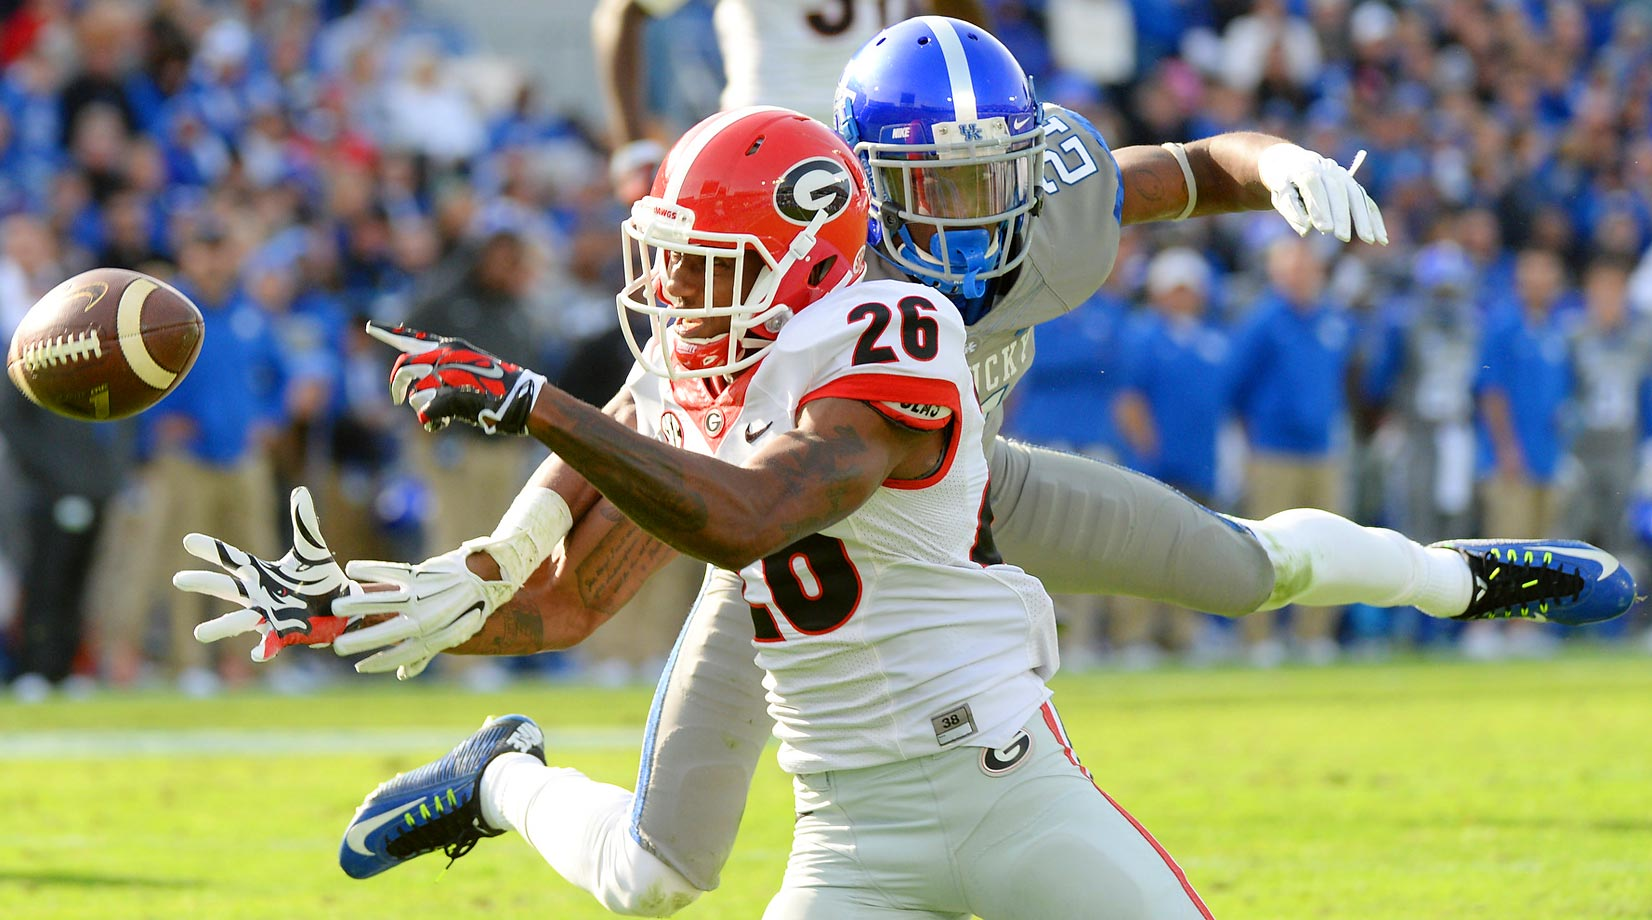 Georgie wide receiver Malcolm Mitchell attempts to make a catch against Kentucky cornerback Nate Willis.